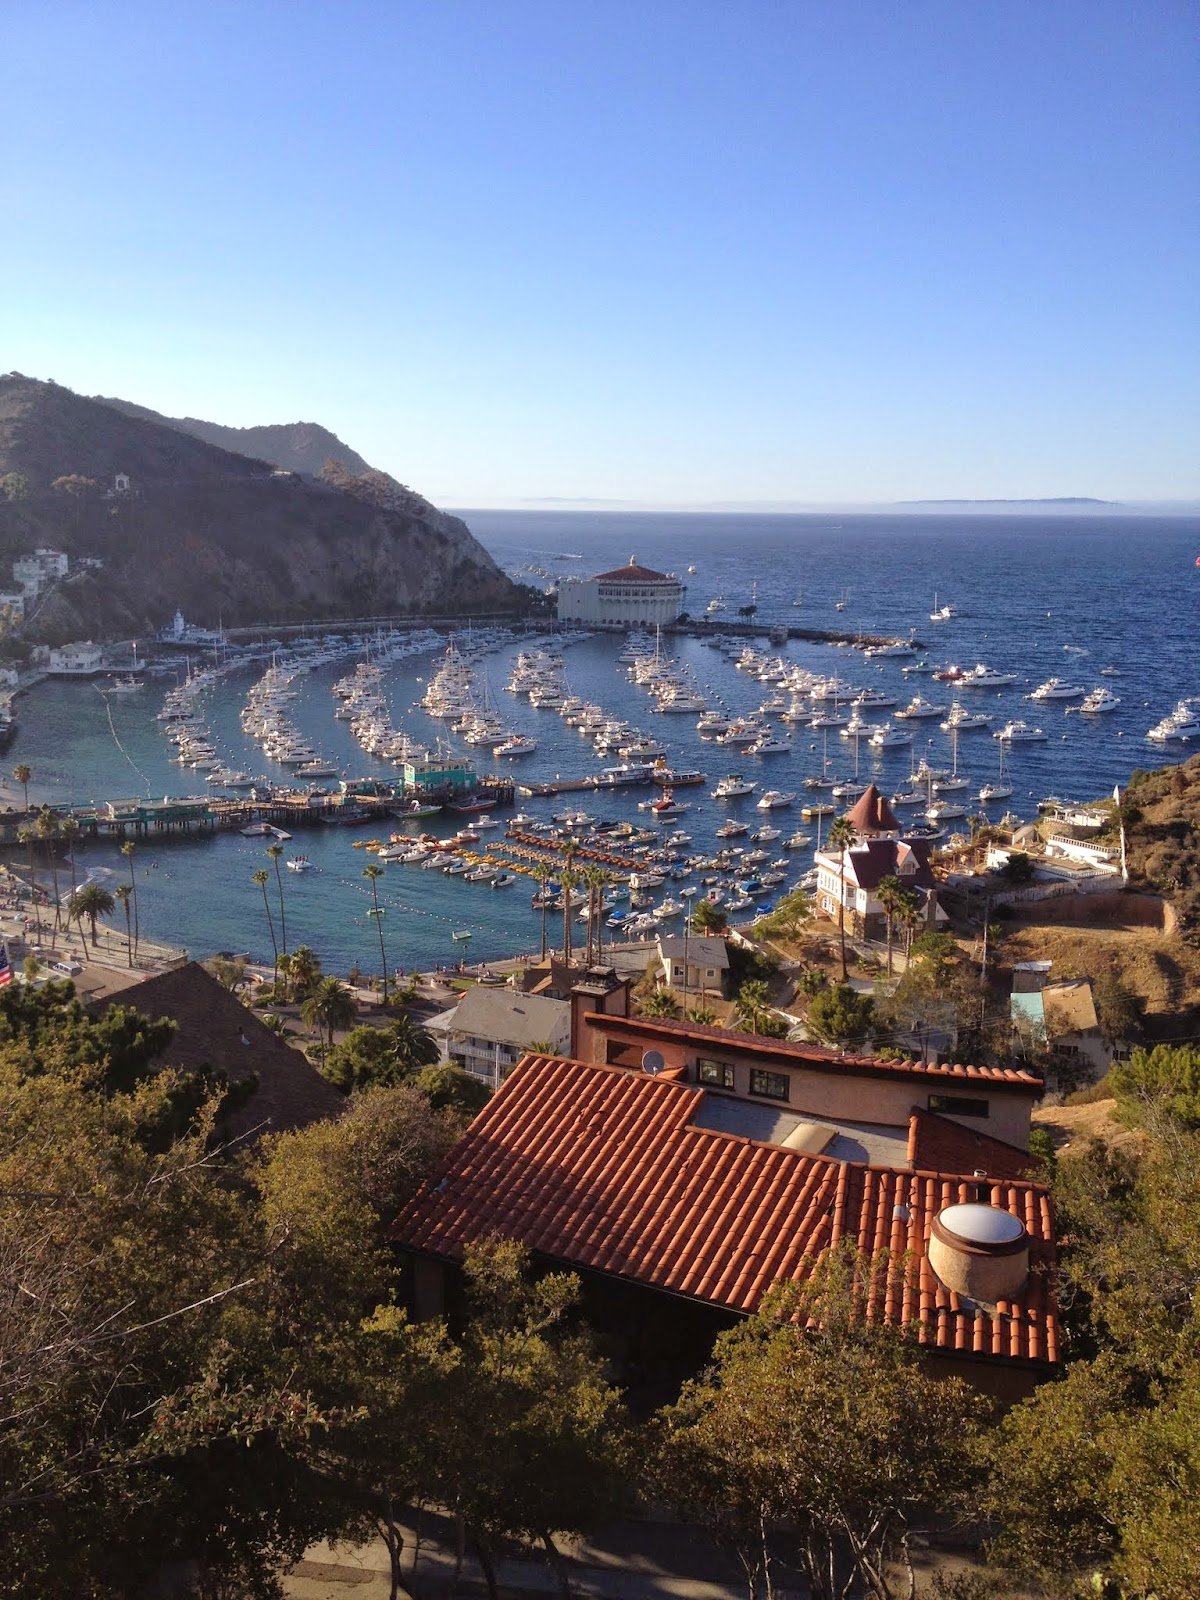 Santa Catalina Island, California